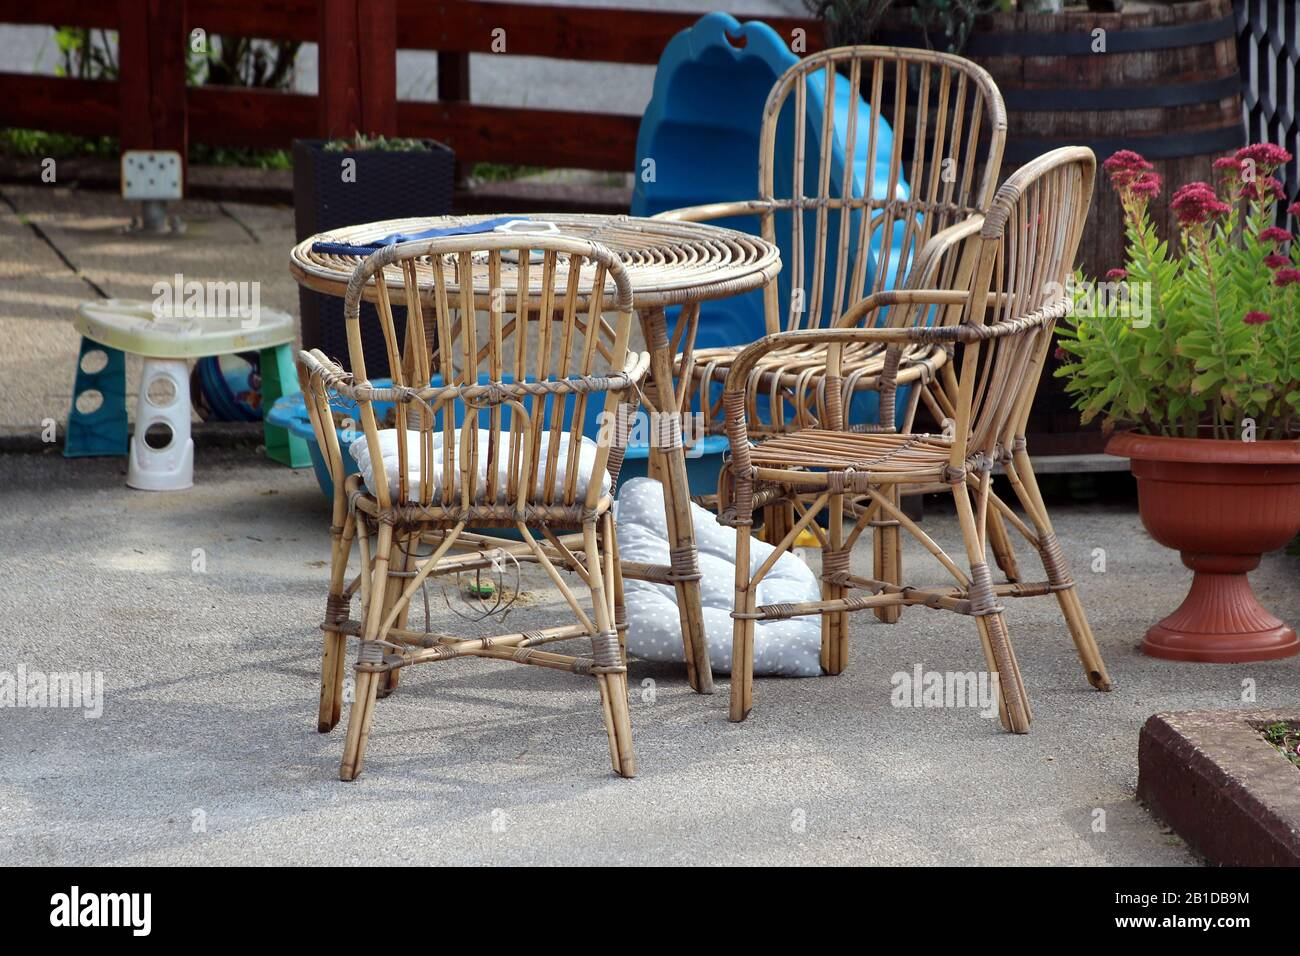 Bamboo Garden Furniture High Resolution Stock Photography and